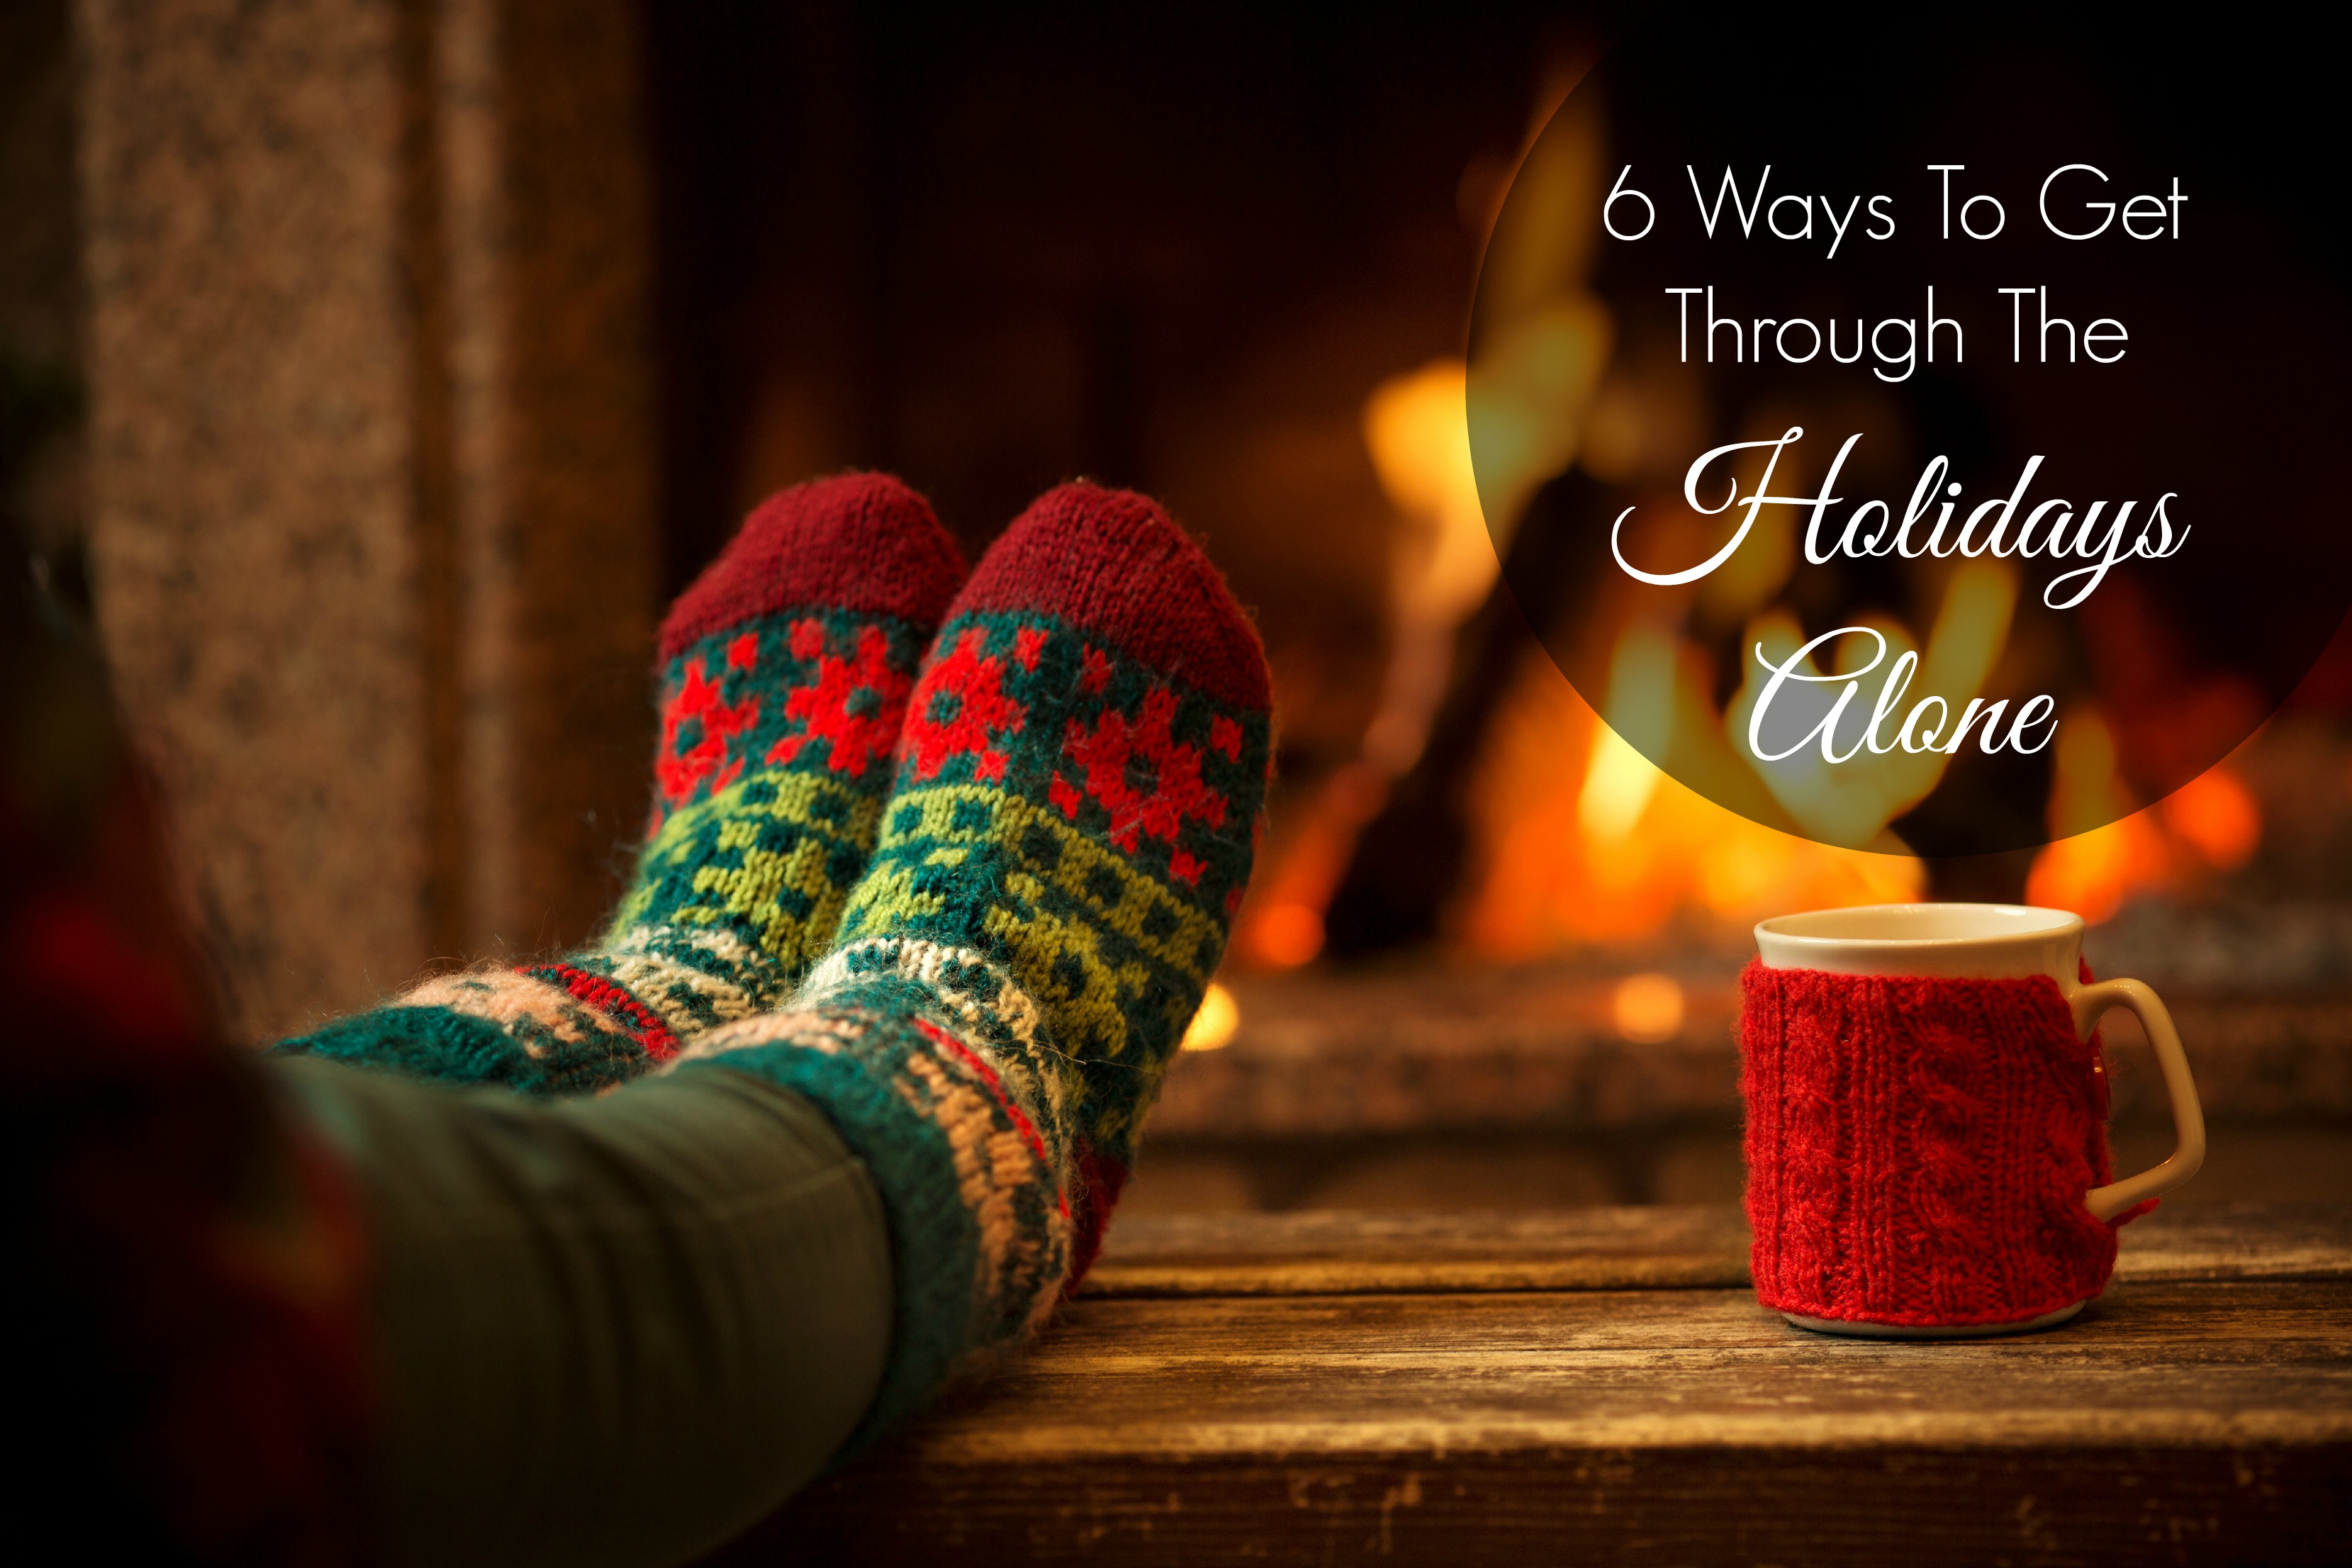 6 Tips To Cope With the Holidays During a Deployment